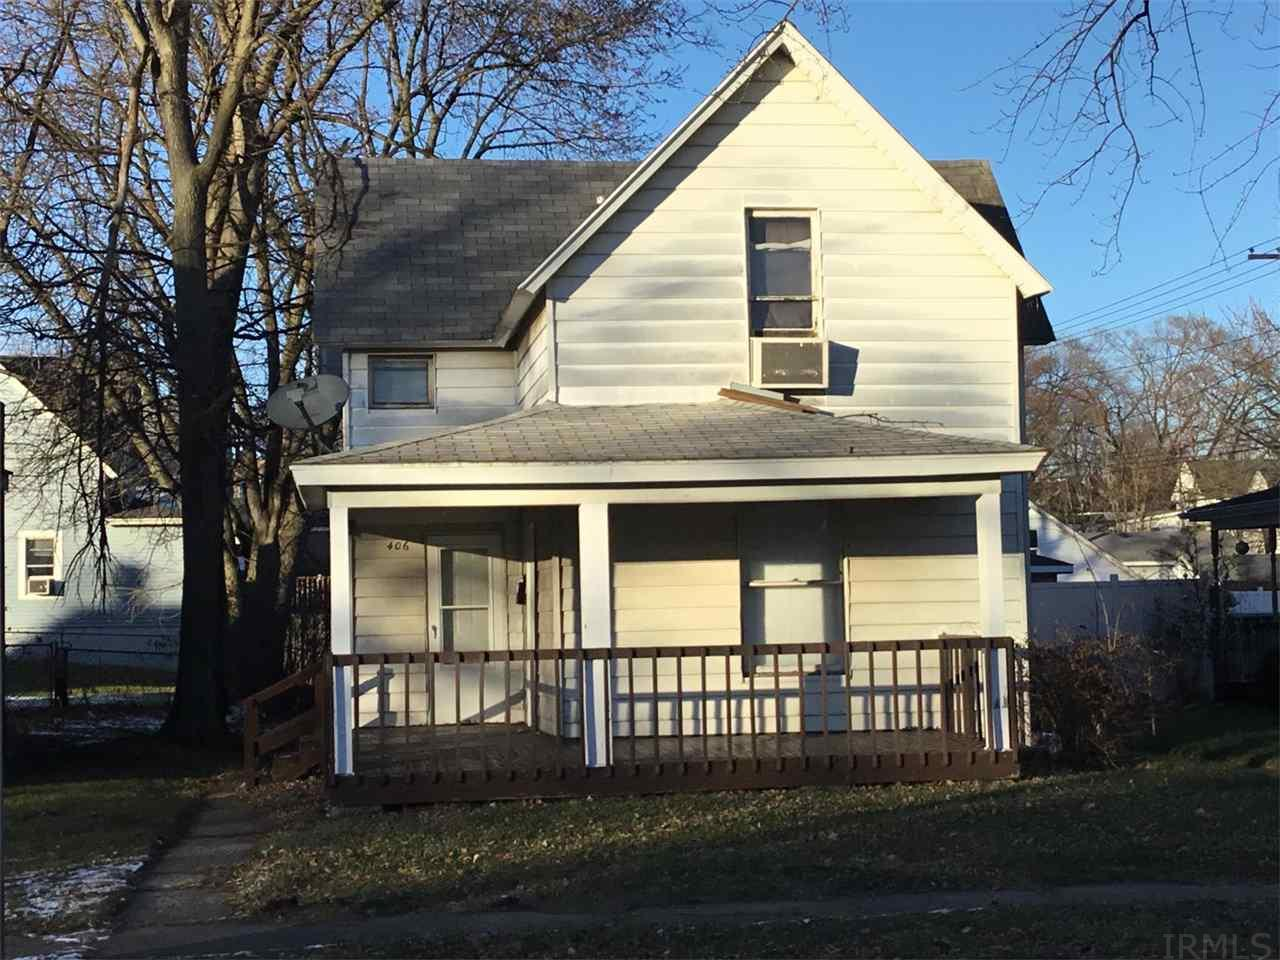 406 E Lawrence Mishawaka, IN 46545